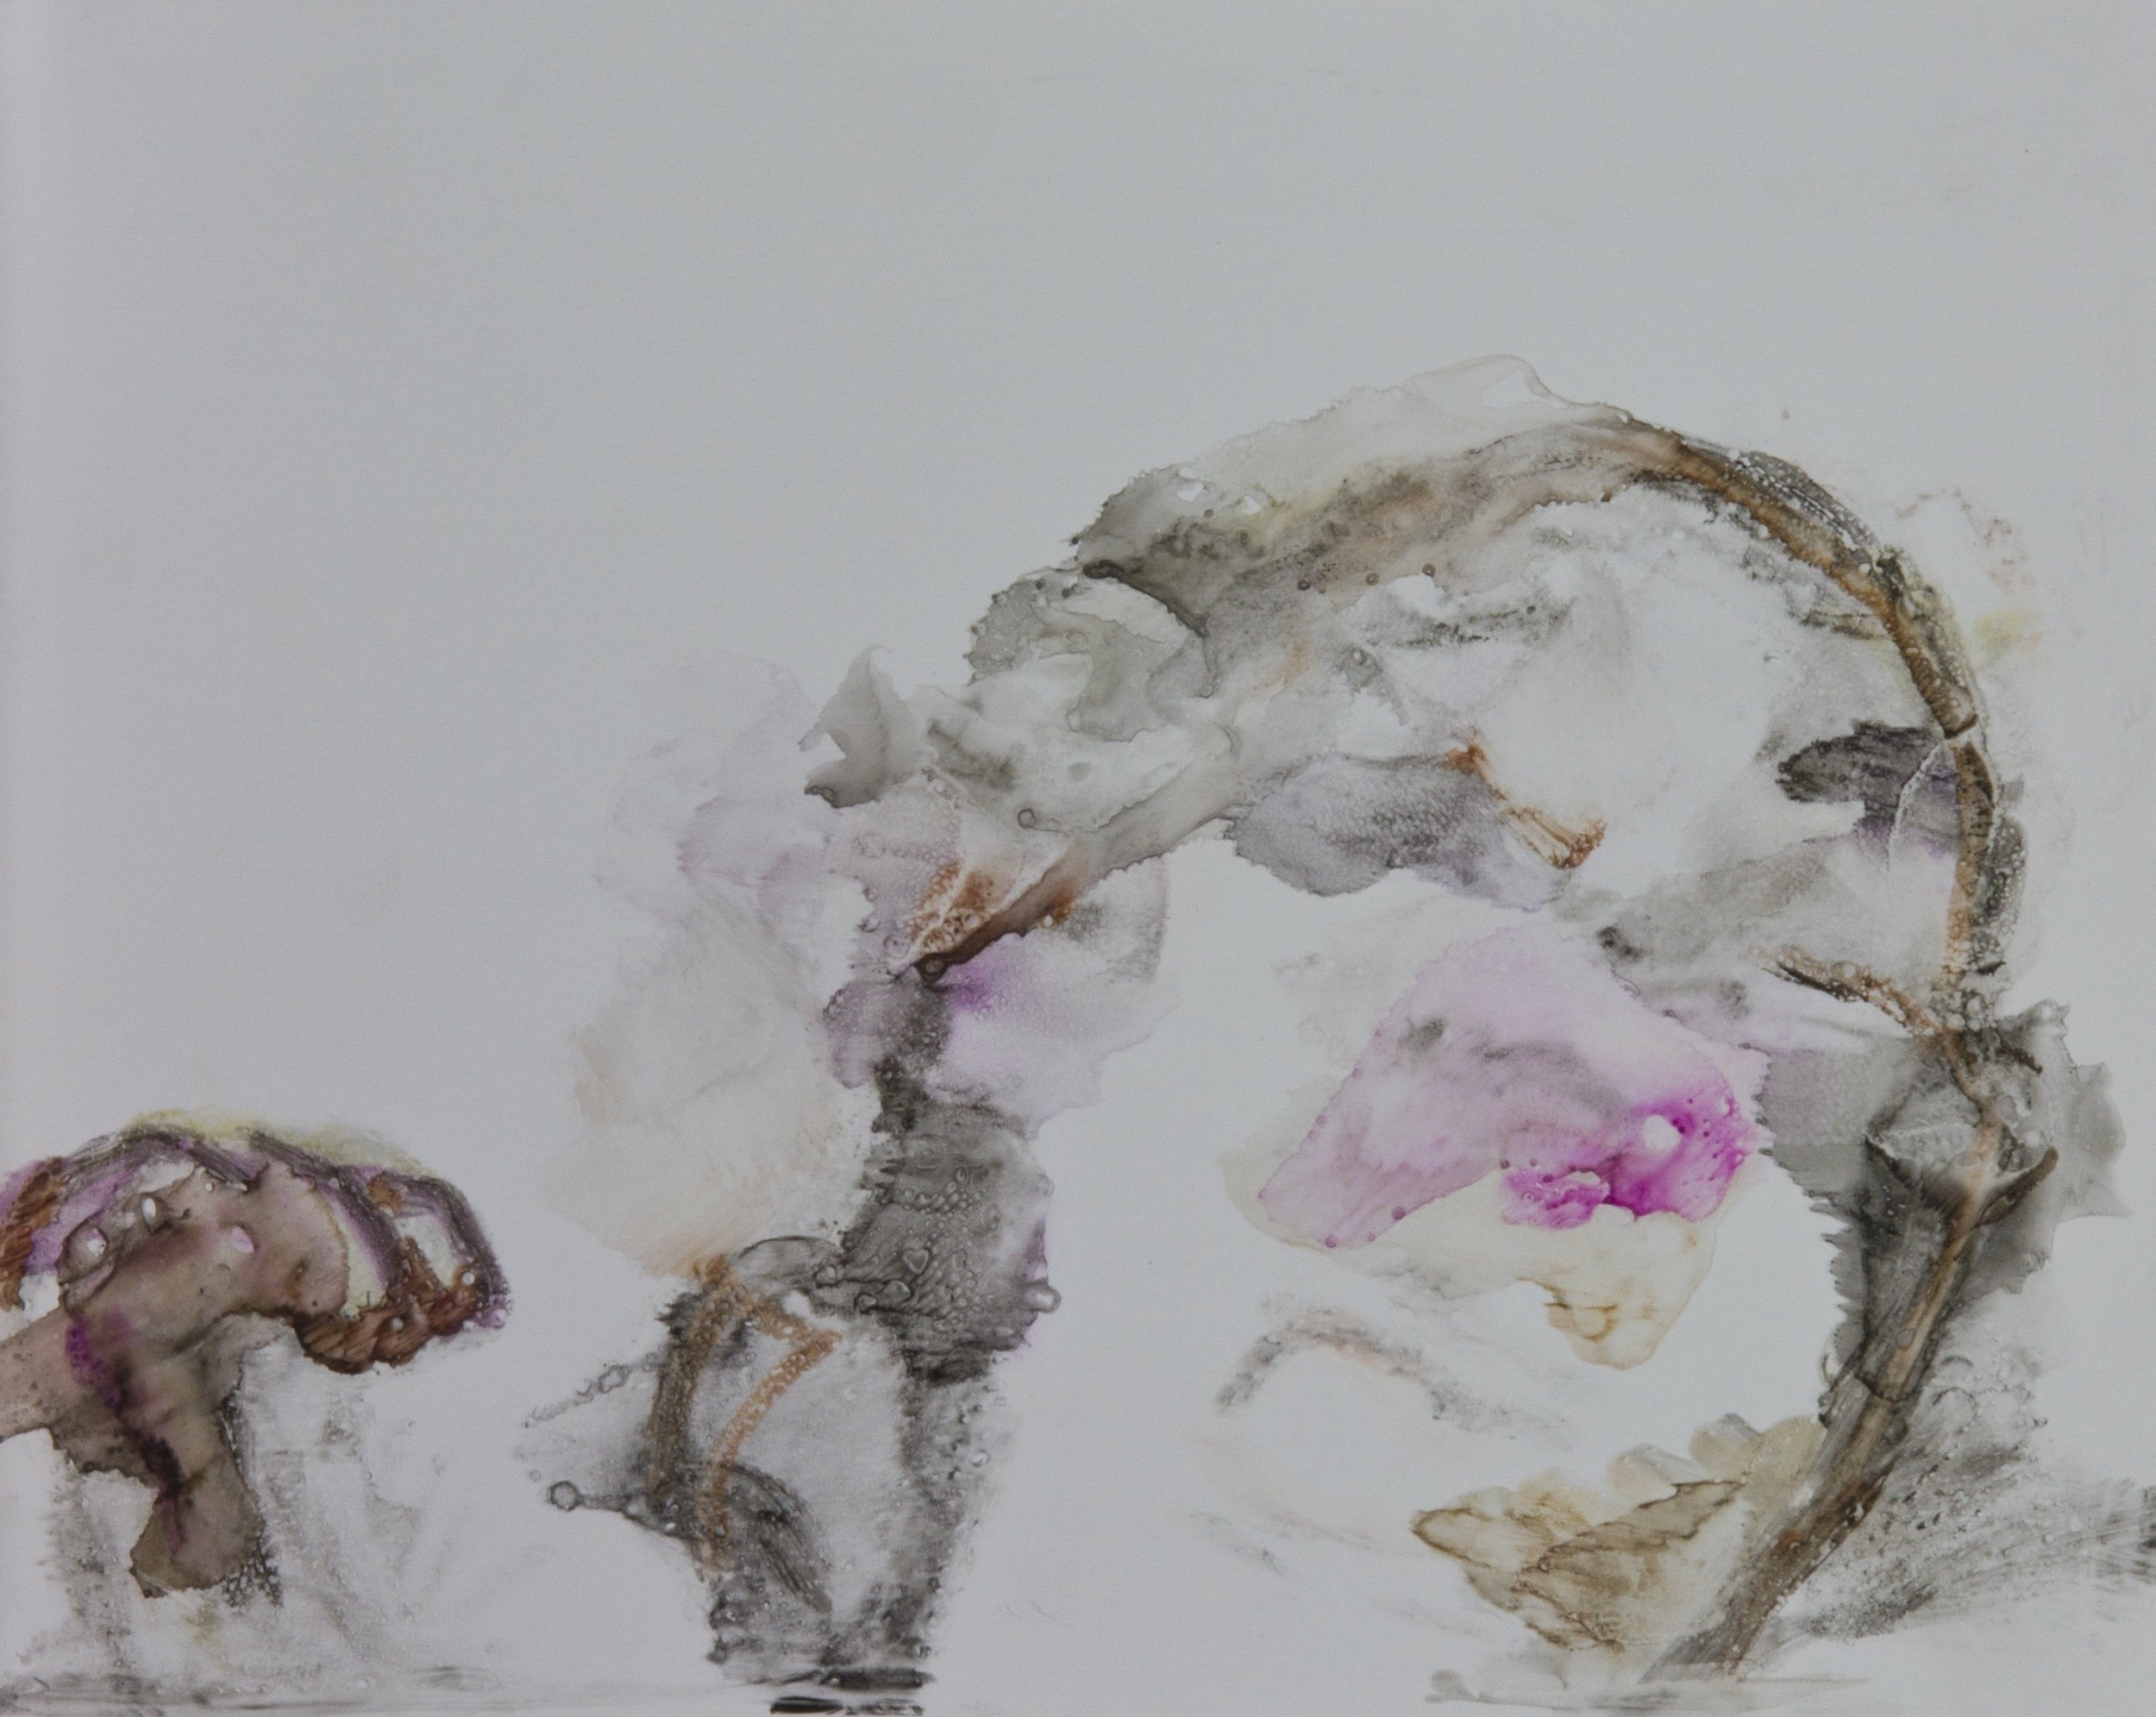 Acts 15, 2010, watercolor monotype on polypropylene, 11x14 inches